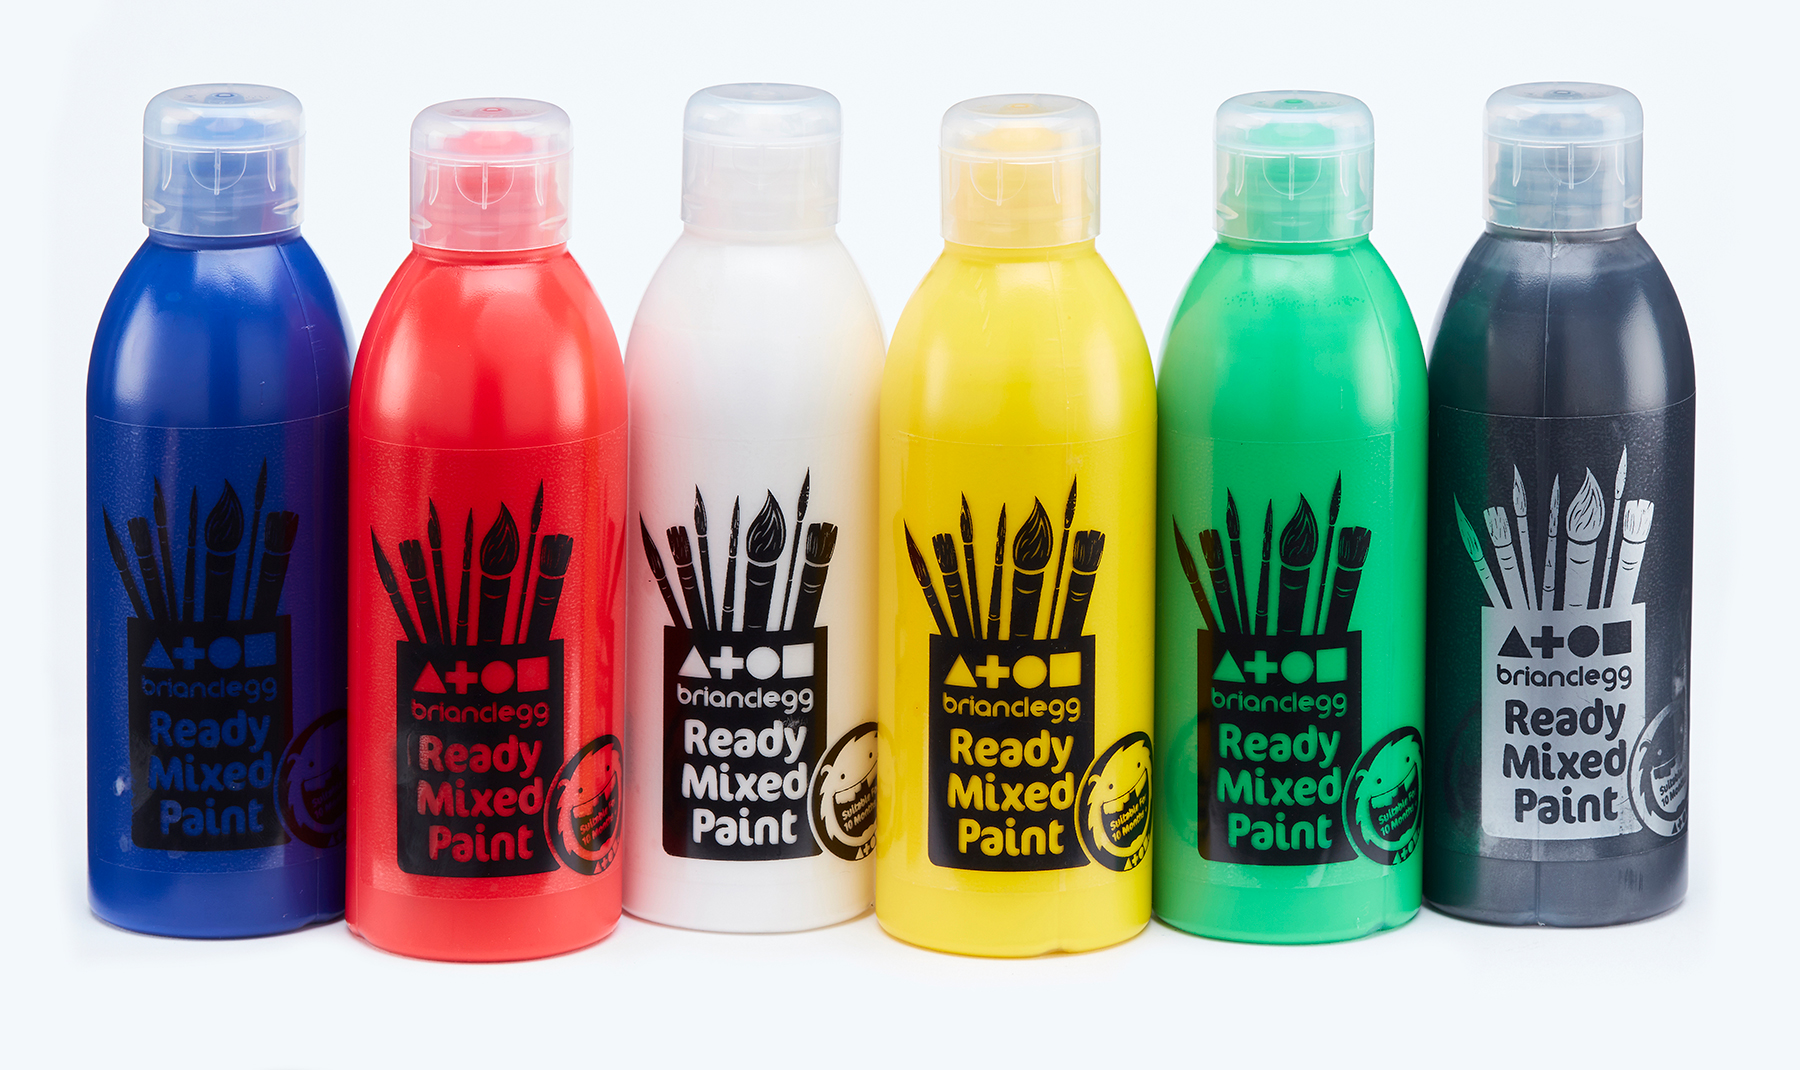 Ready Mixed Paint Assorted Std Colours 6x300ml Bottles